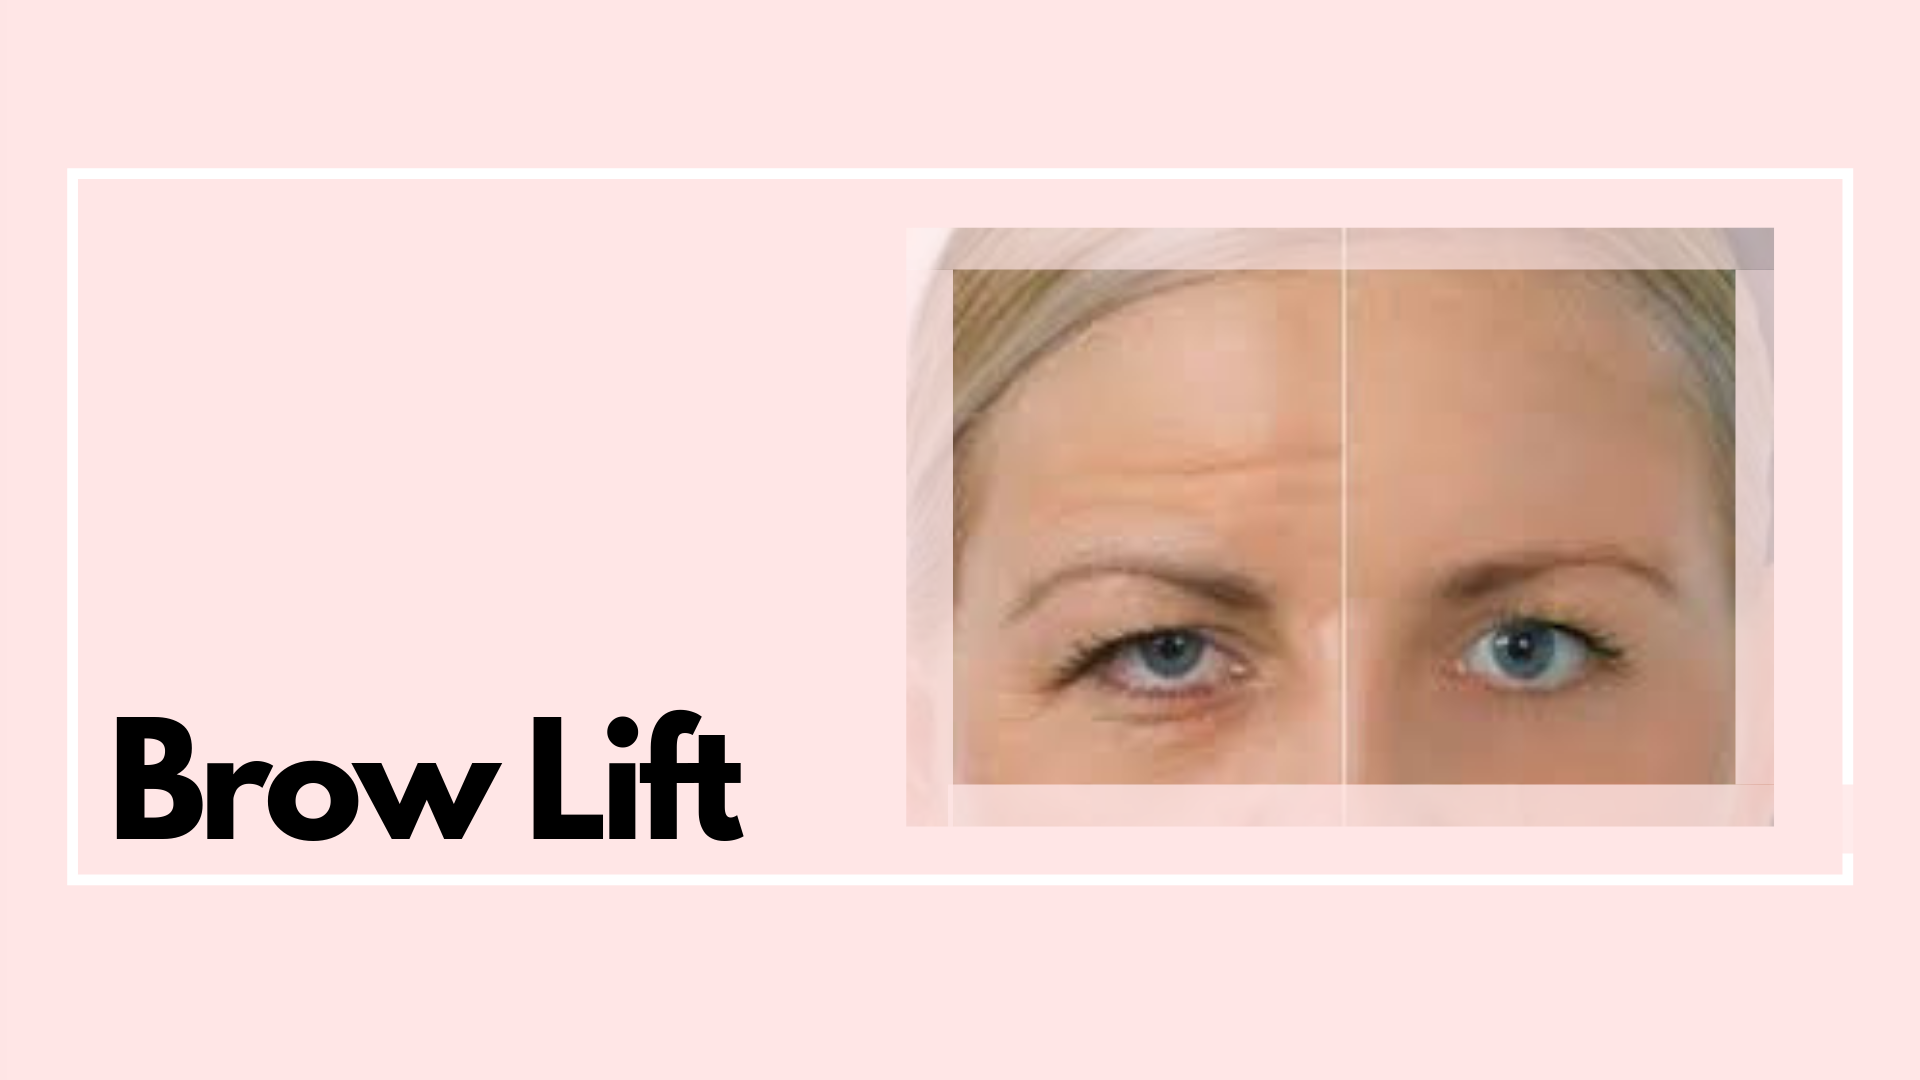 A brow lift is the perfect way to improve the appearance of your forehead and eyes. Low brows are instantly lifted to reveal a more youthful appearance.